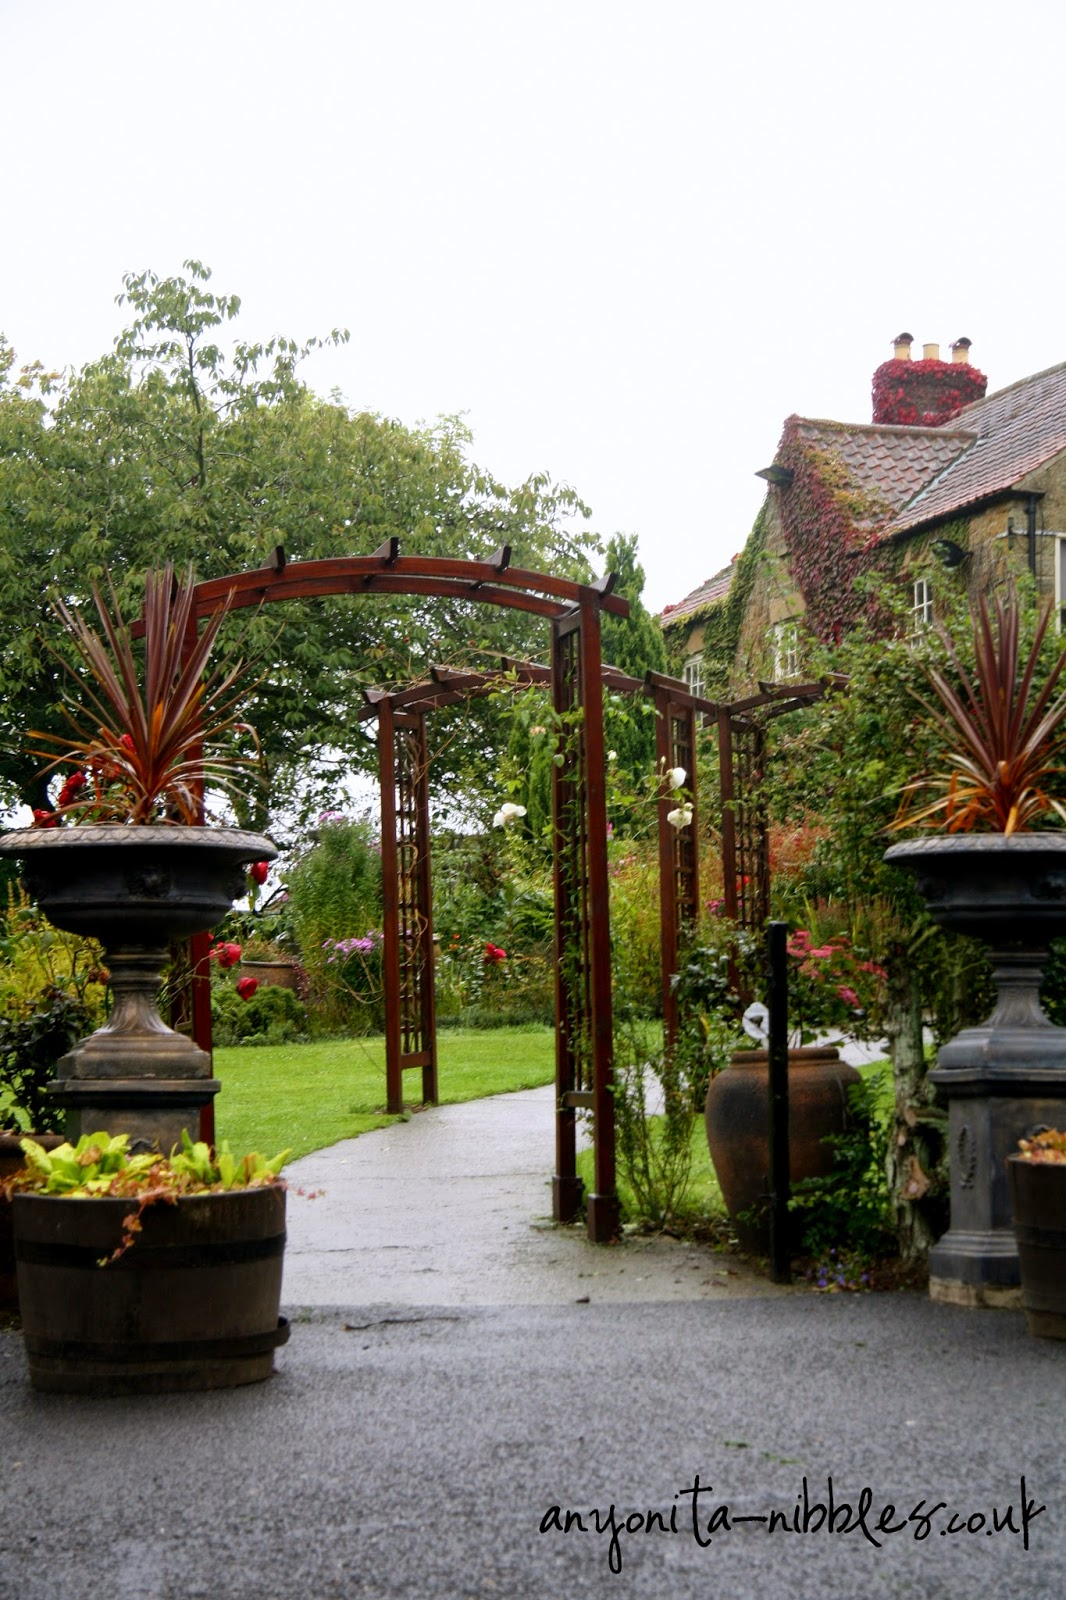 A rain-soaked walk to this quaint North Yorkshire luxury hotel | Anyonita-nibbles.co.uk